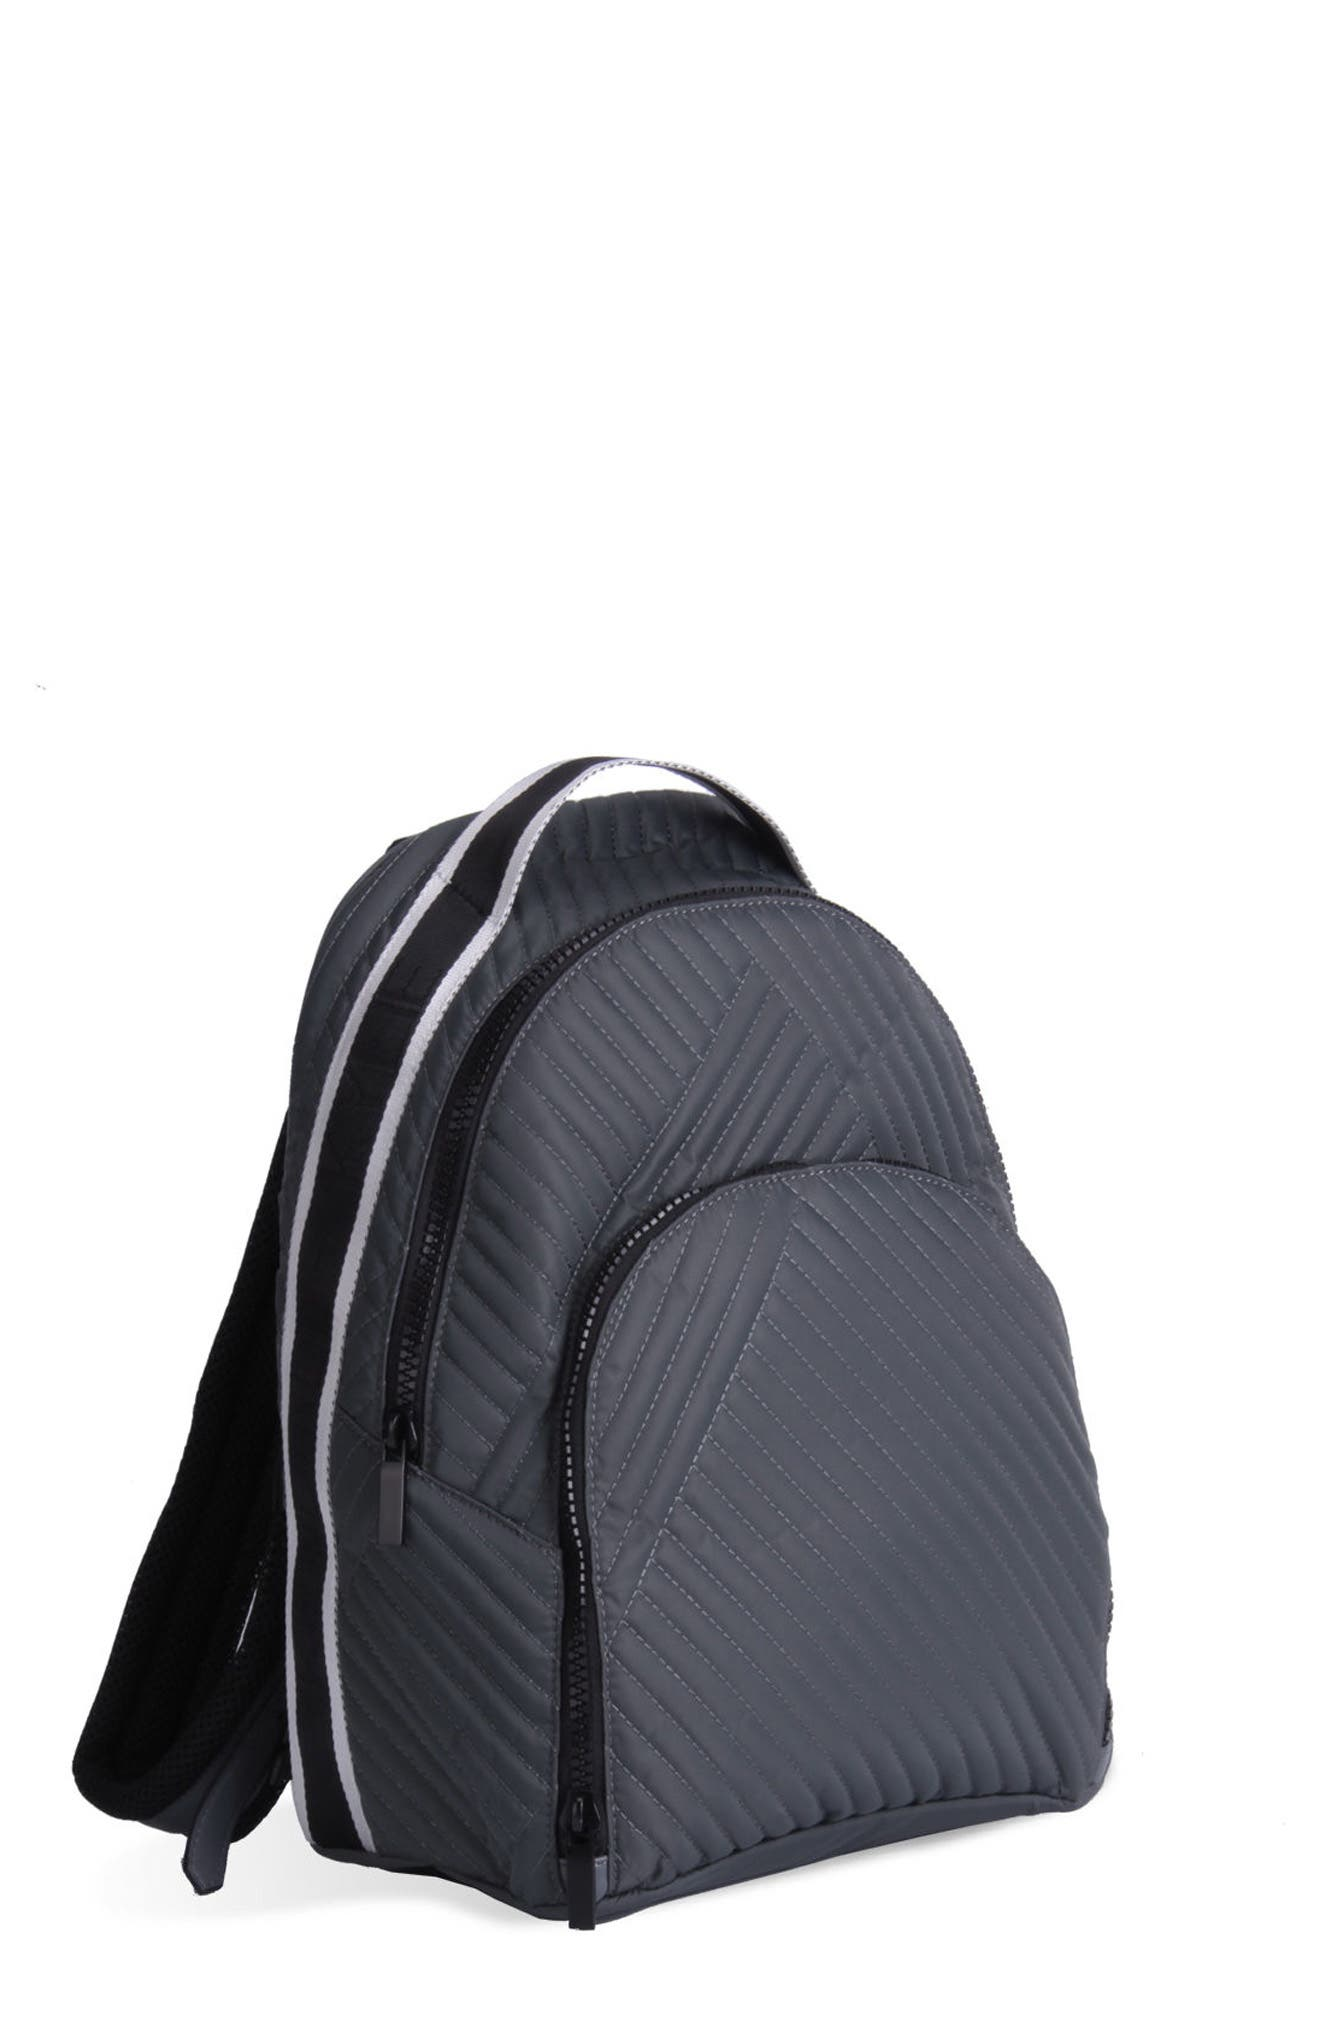 Alternate Image 1 Selected - KENDALL + KYLIE Jo Quilted Nylon Backpack